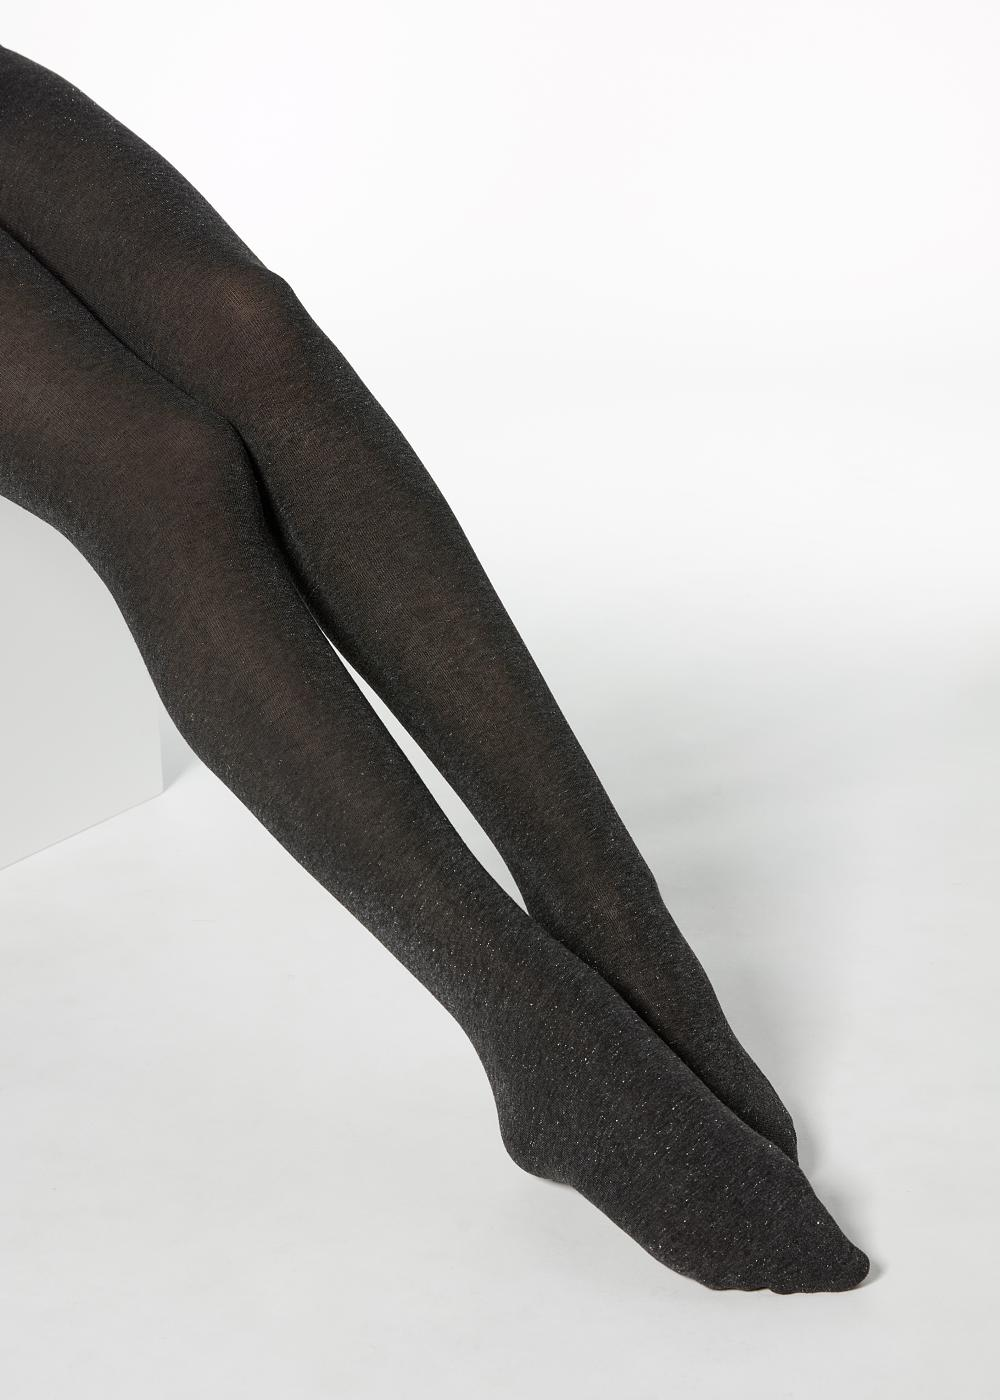 Collants Brilhantes Suaves